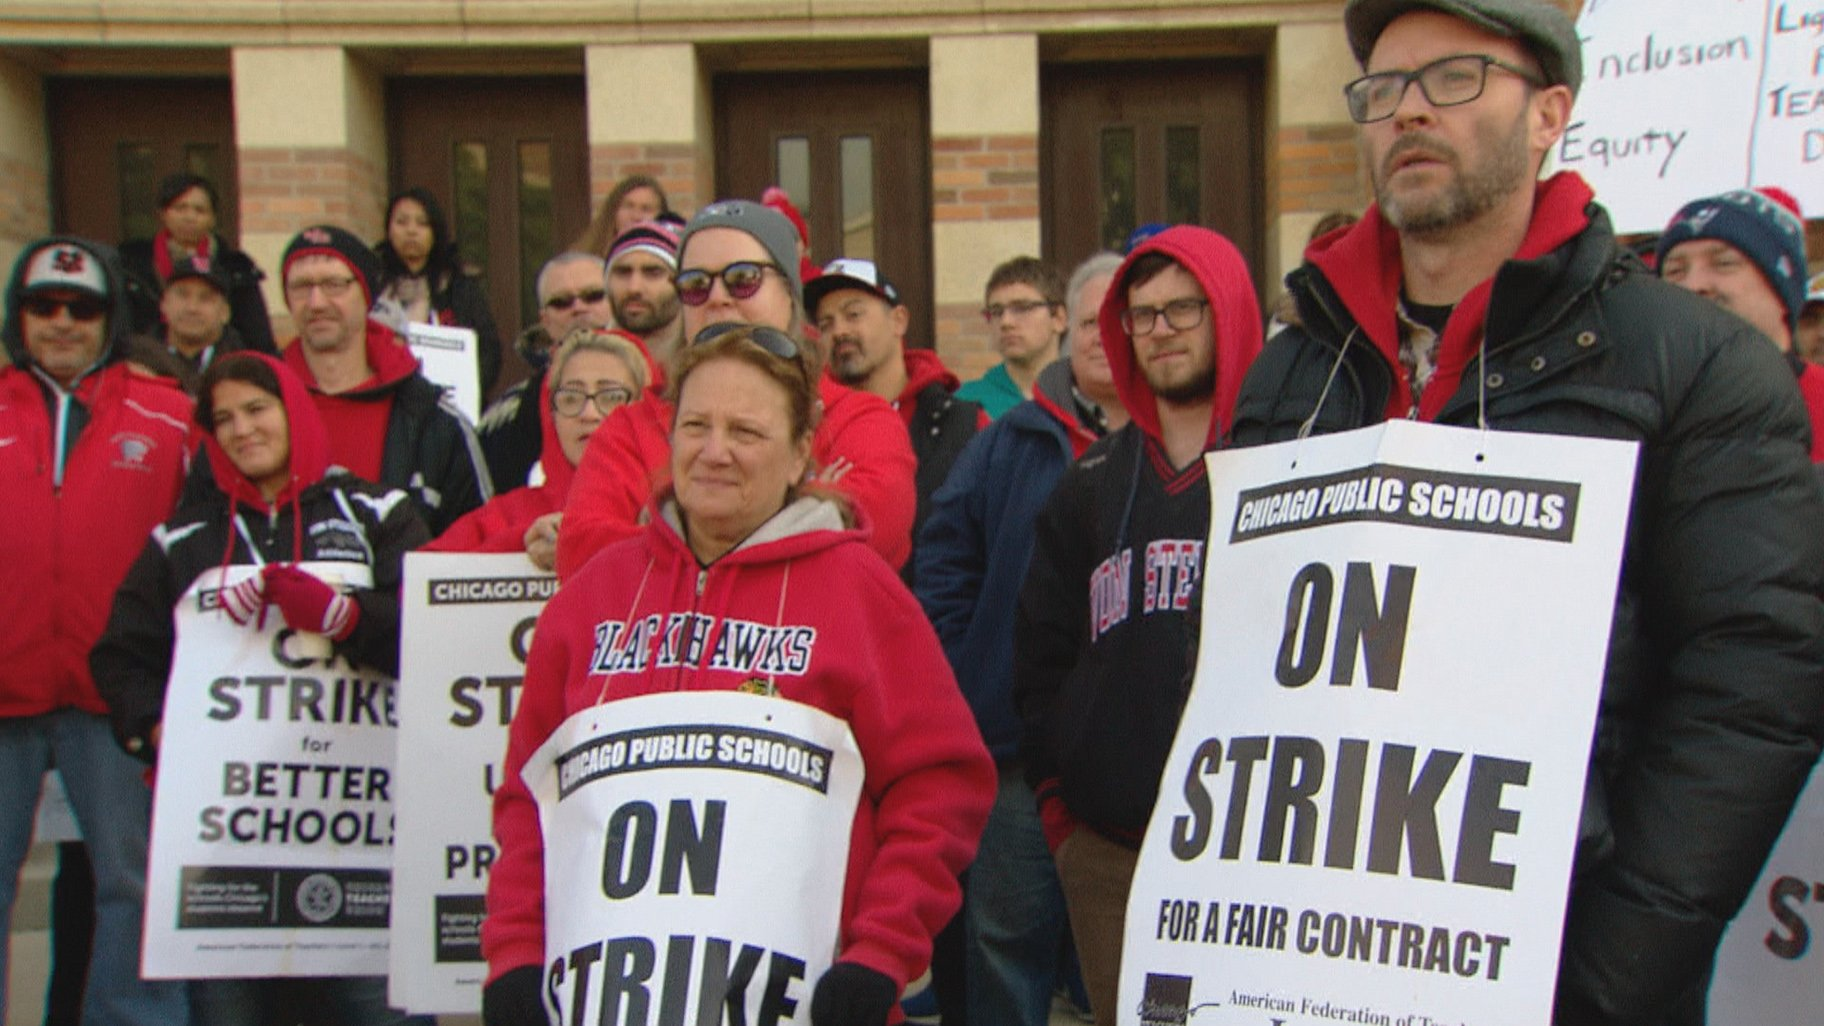 Lightfoot Asks CTU to End Strike Before Contract Agreement is